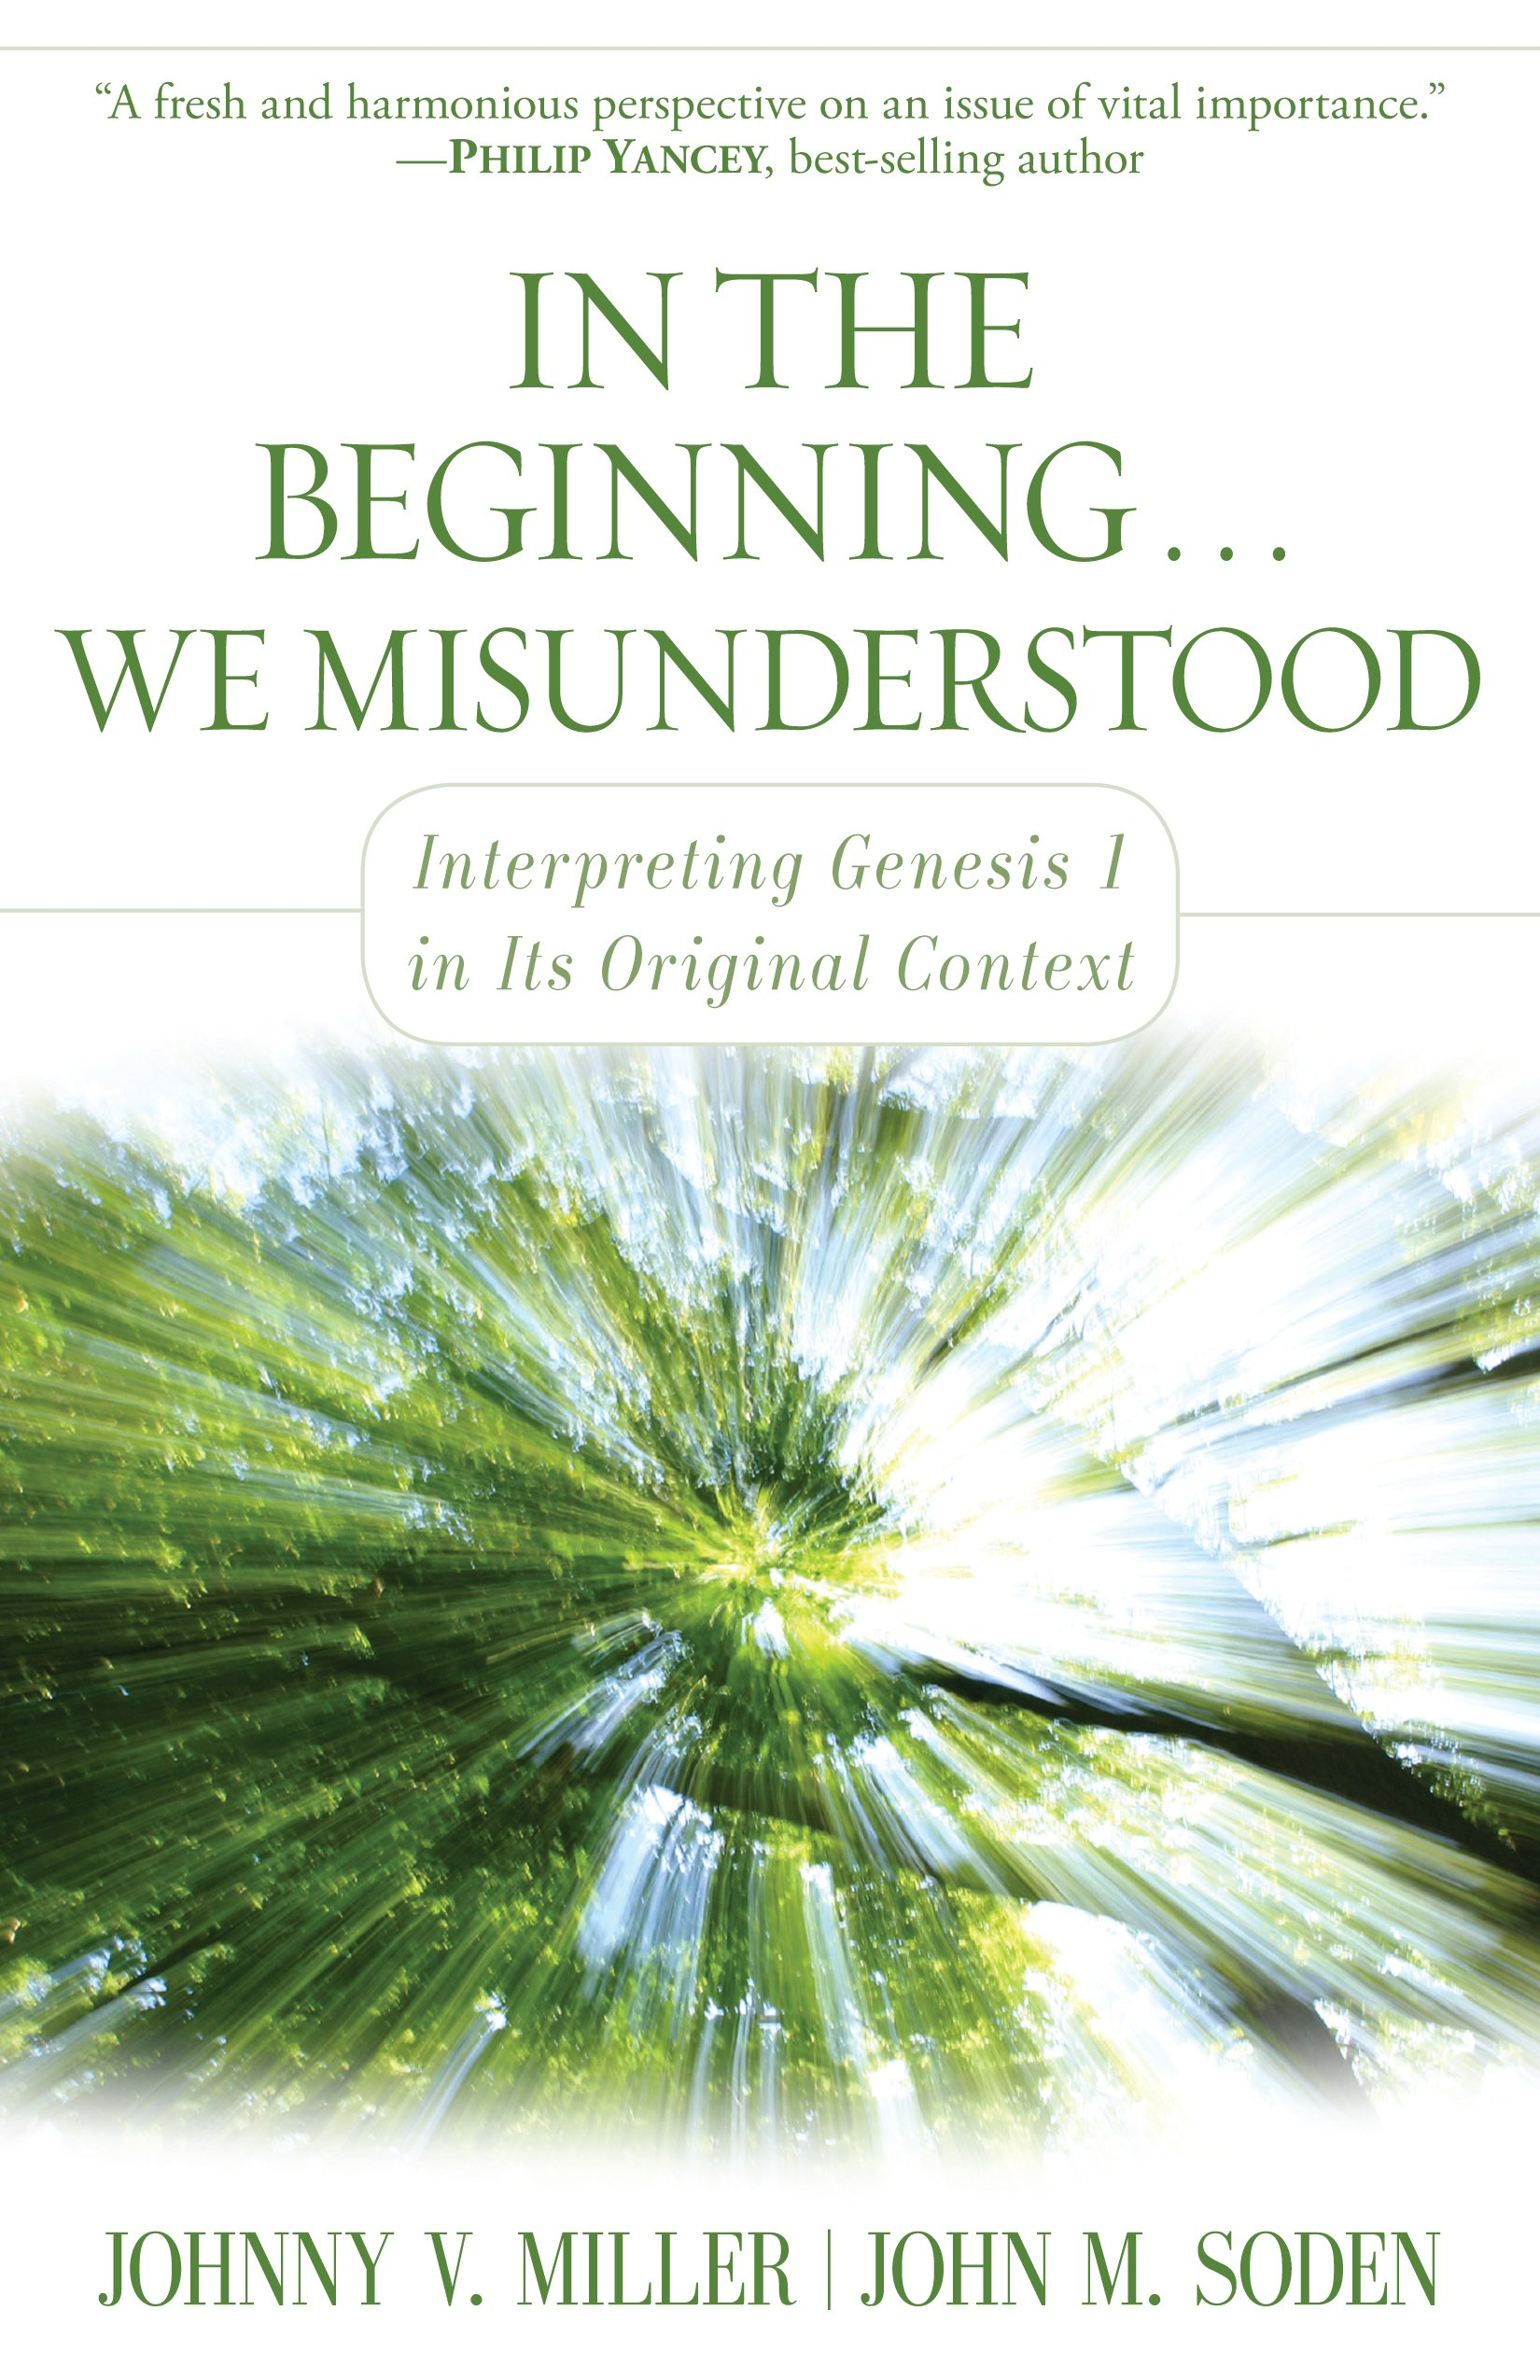 In the Beginning... We Misunderstood: Interpreting Genesis 1 in Its  Original Context: Johnny V. Miller, John M. Soden: 9780825439278:  Amazon.com: Books